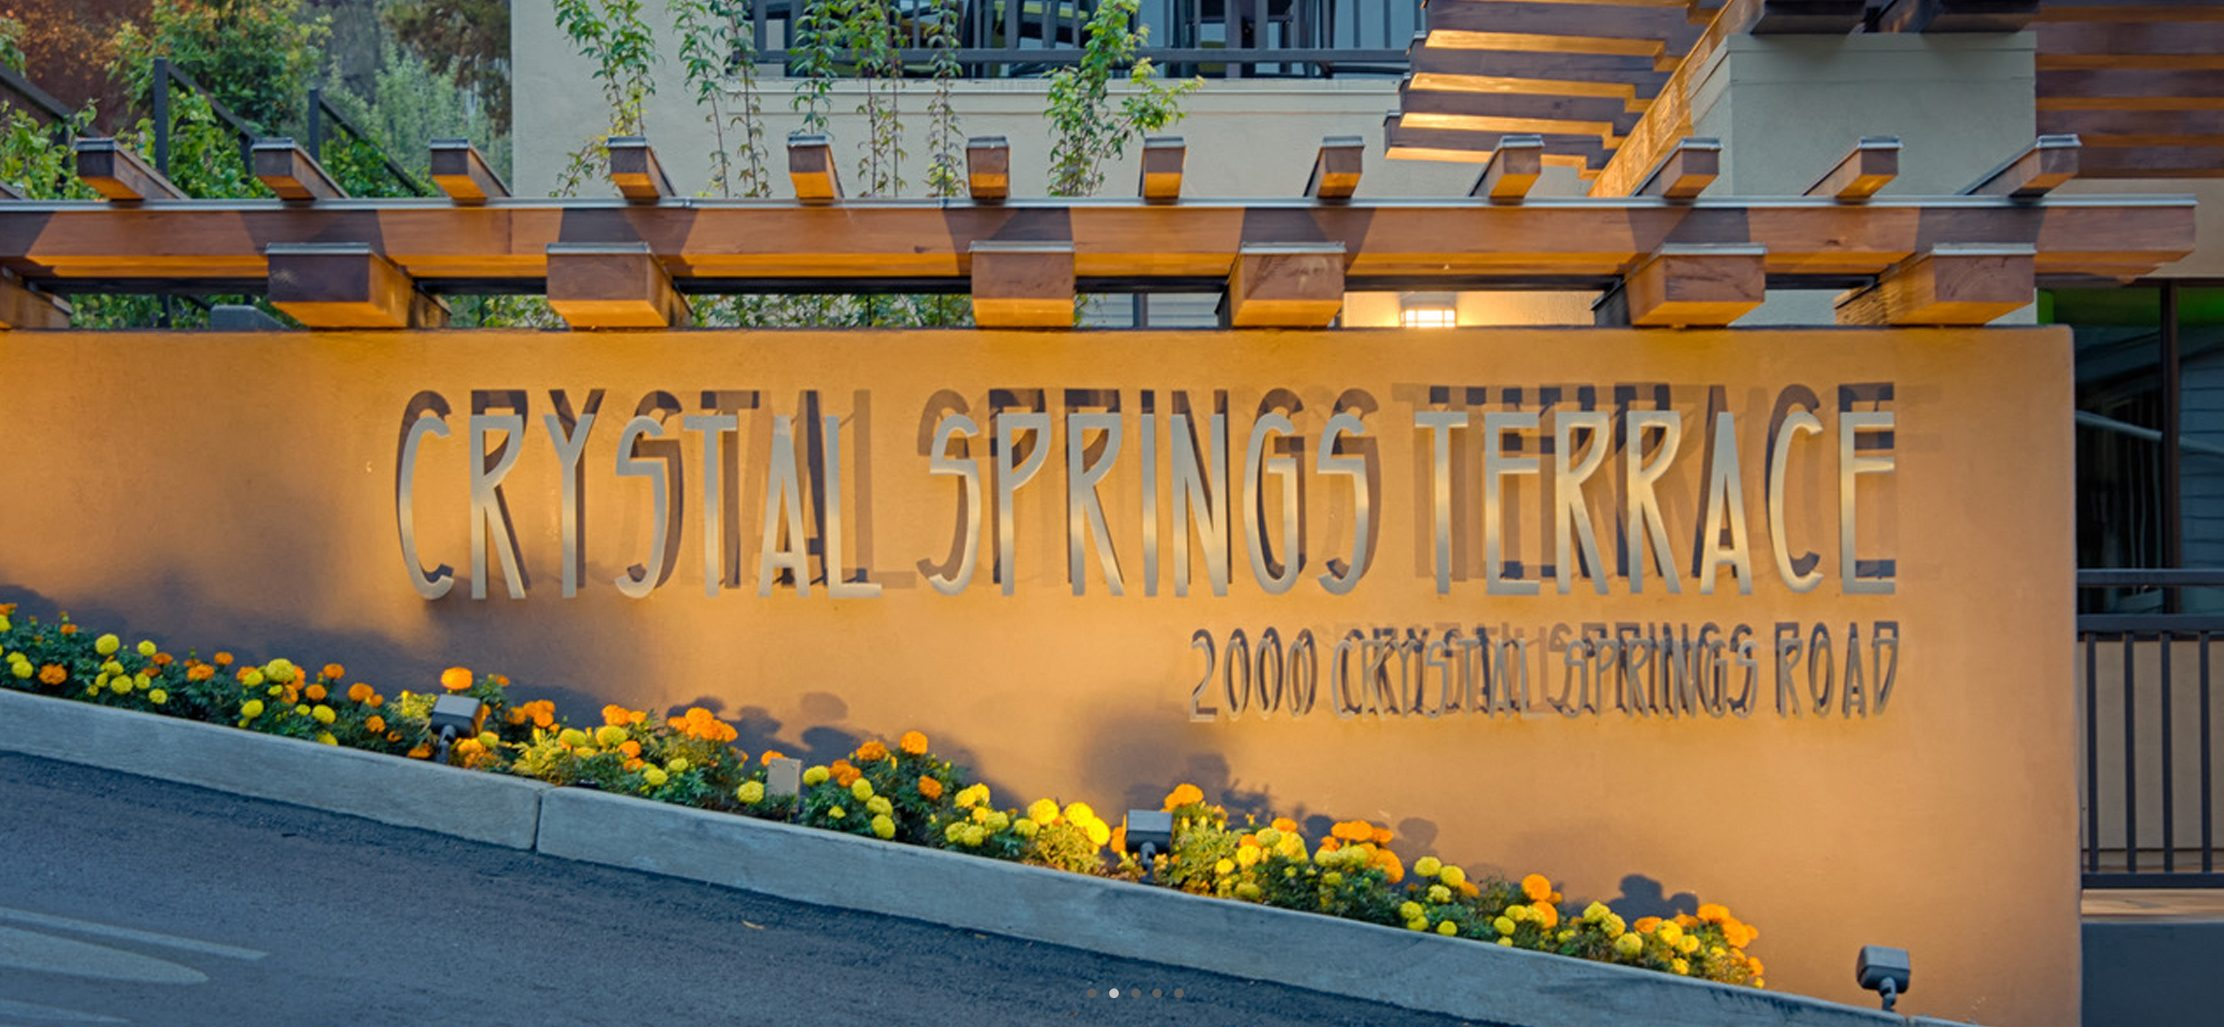 Crystal Springs Terrace